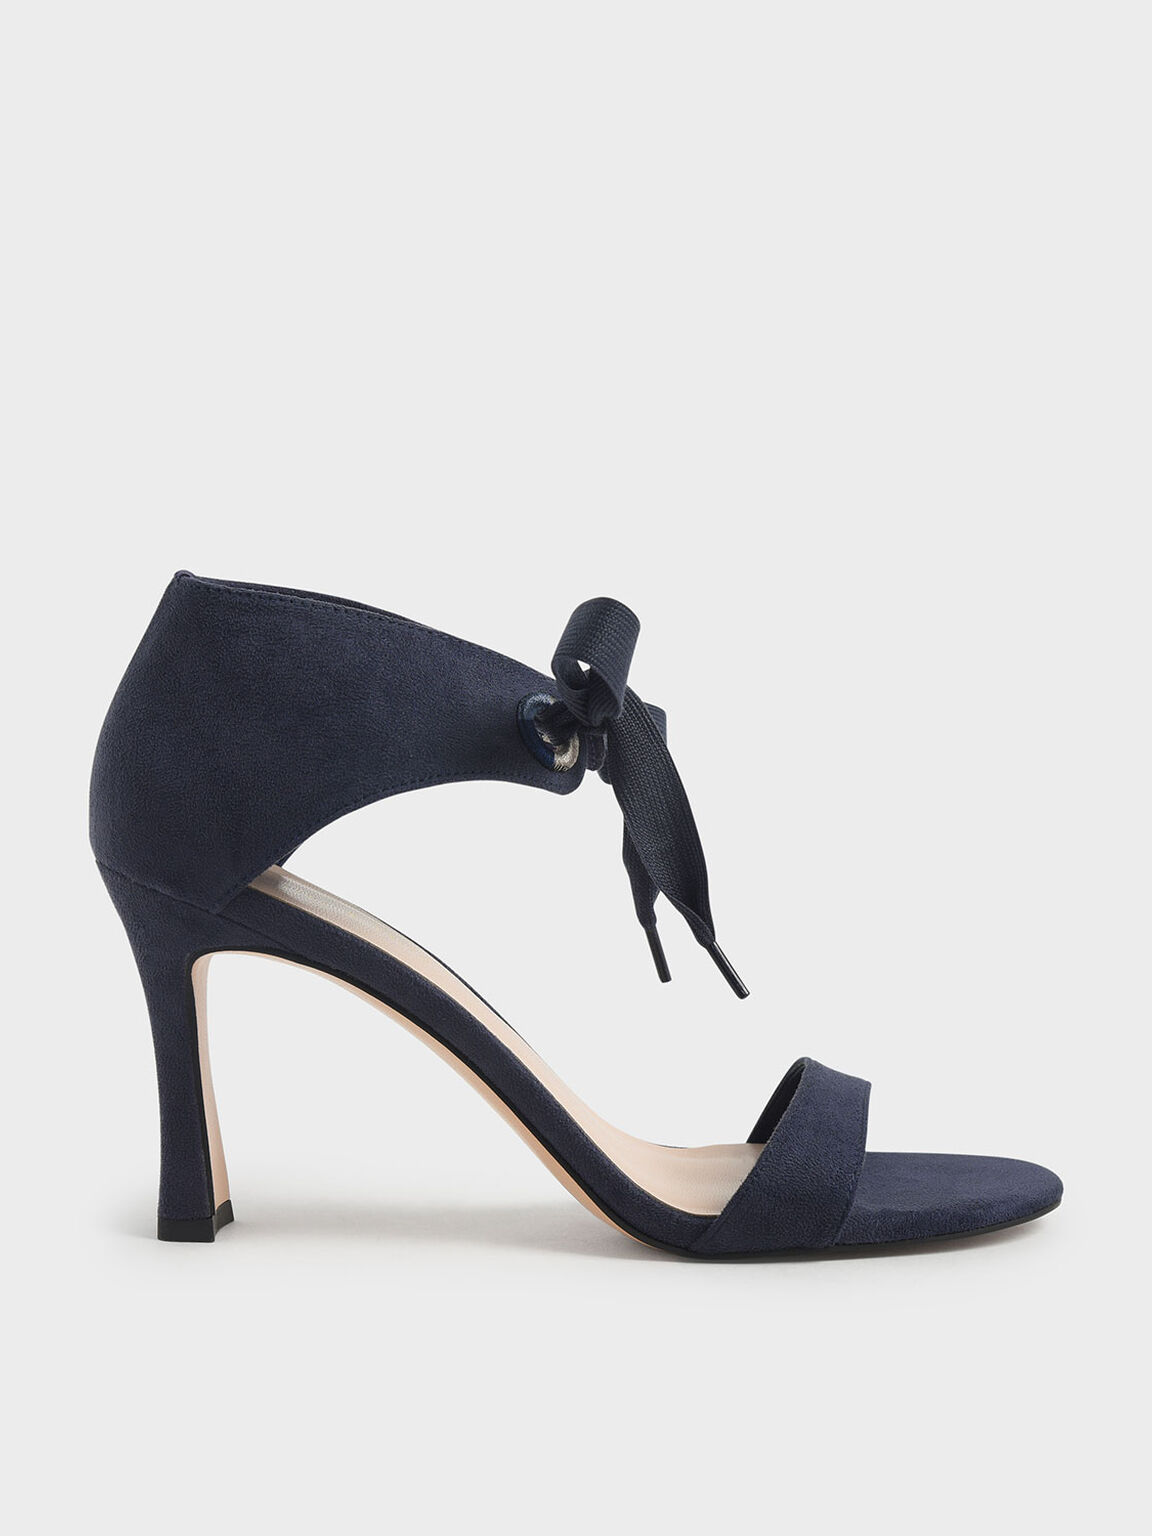 Bow Ankle Strap Sculptural Heel Sandals, Dark Blue, hi-res